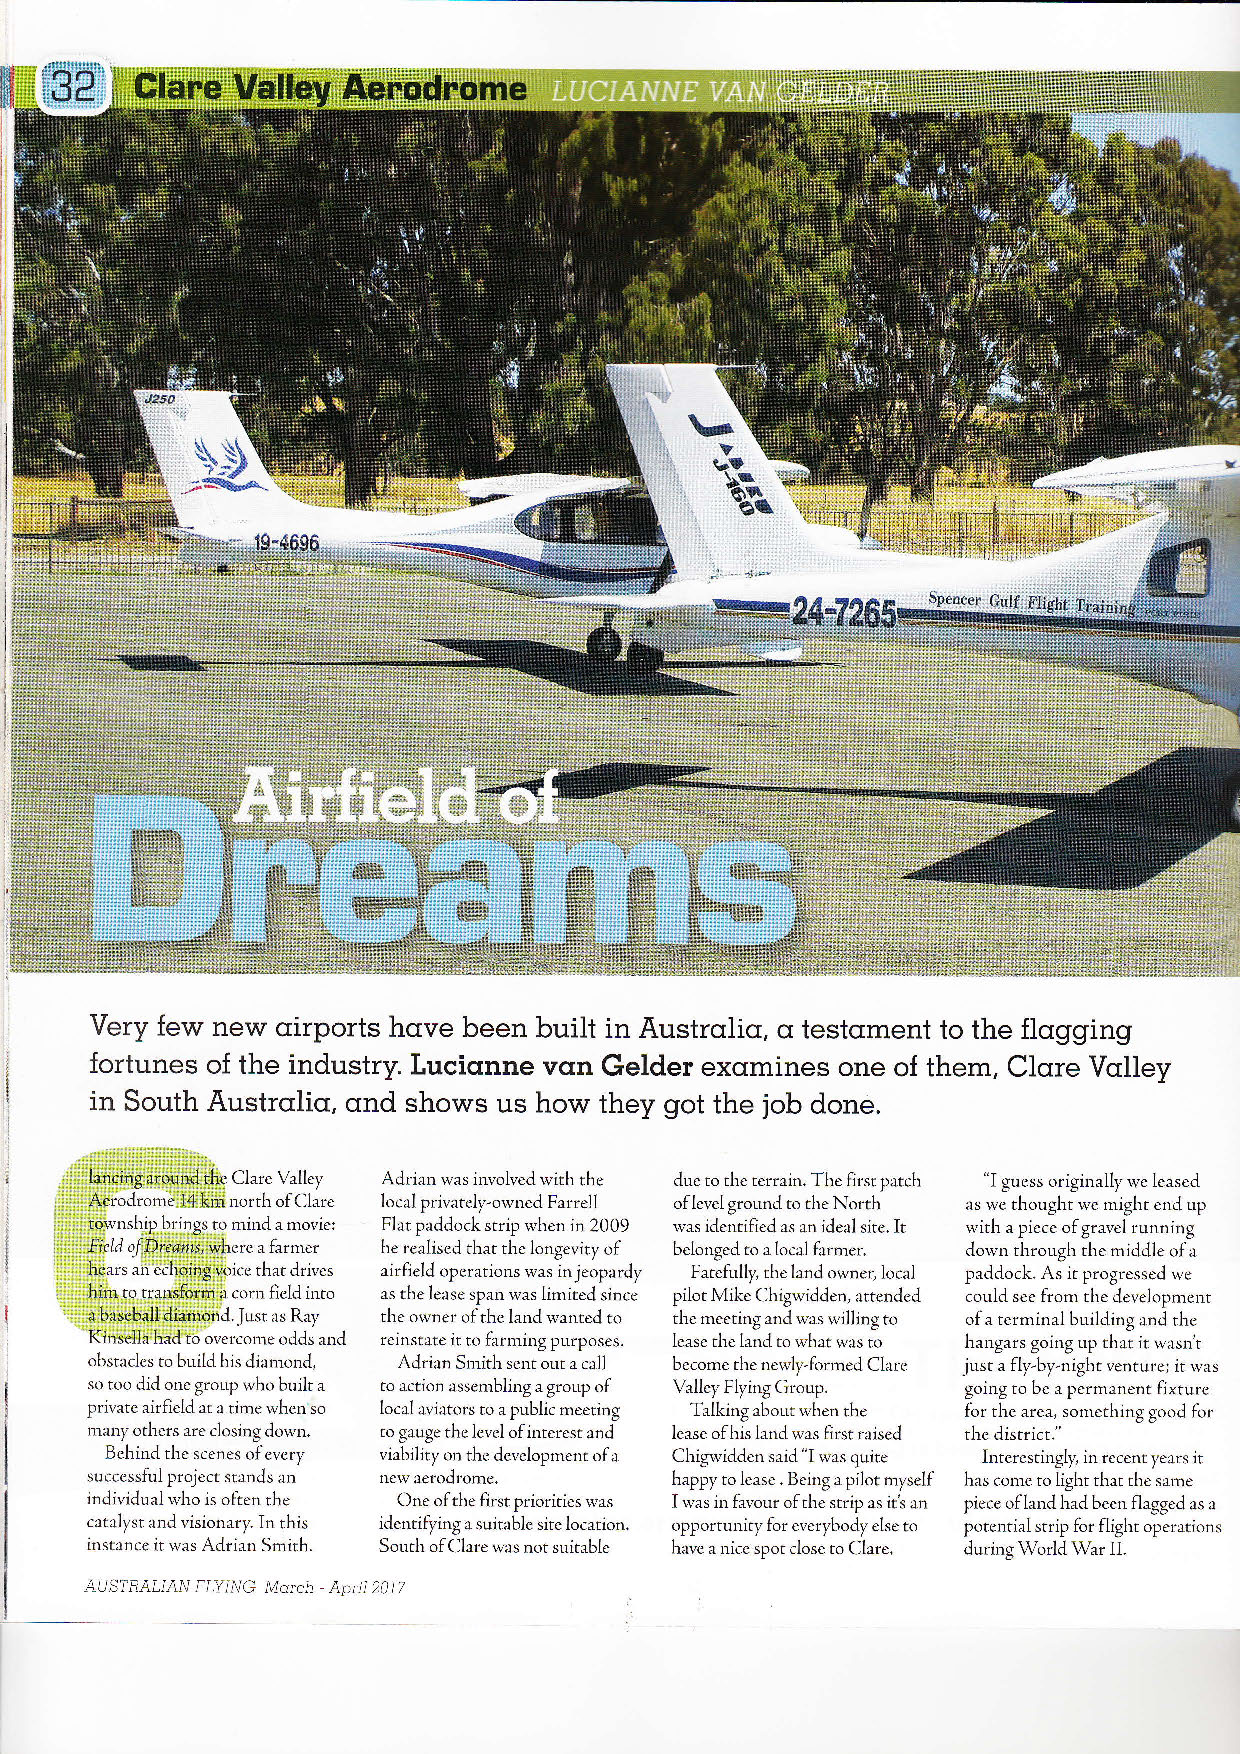 Australian-Flying-March-April-2017 Page